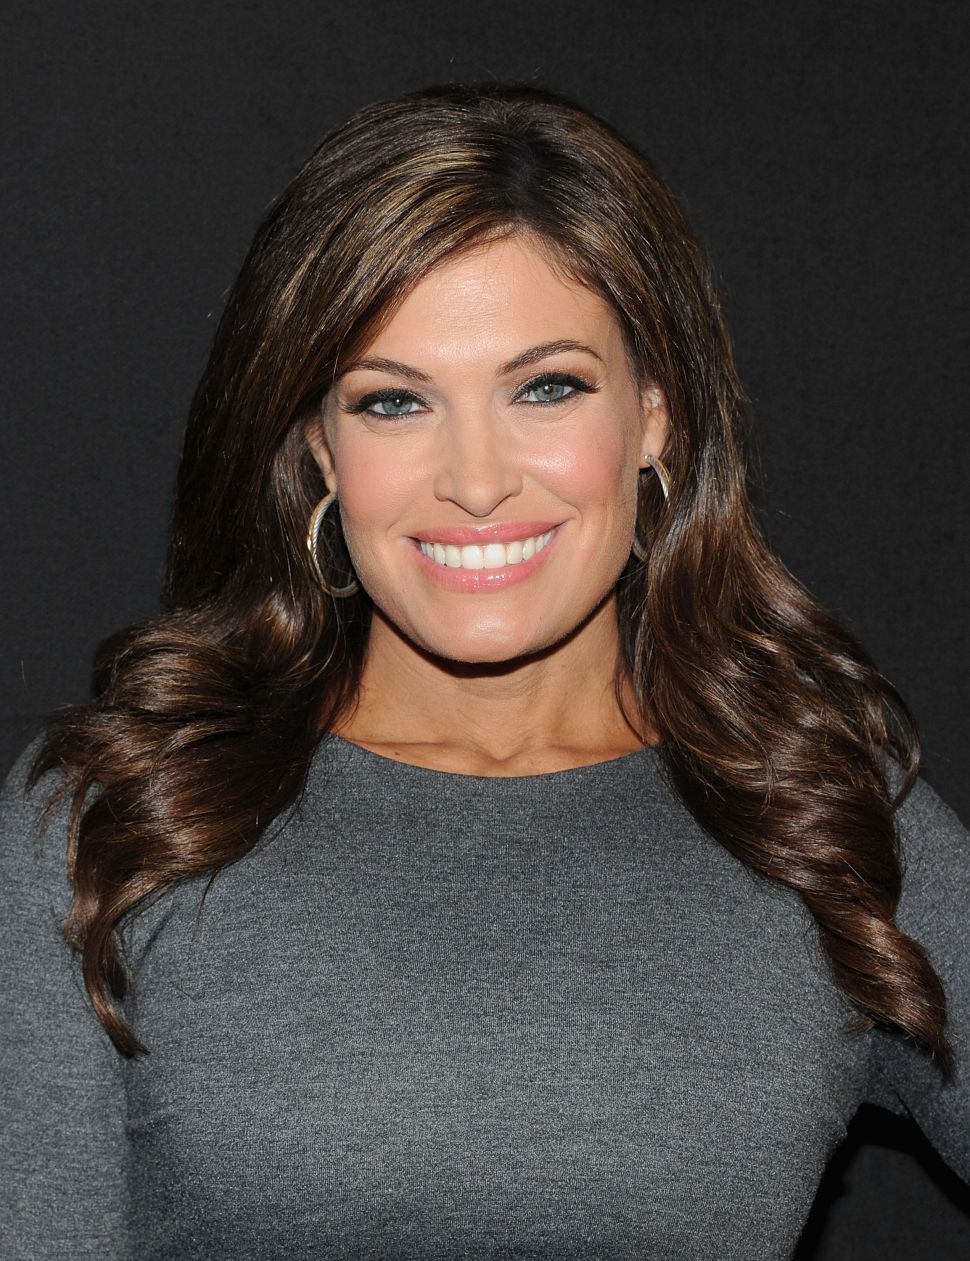 Kimberly Guilfoyle Bet That Abusive Behavior Would Protect Her—She Was Wrong